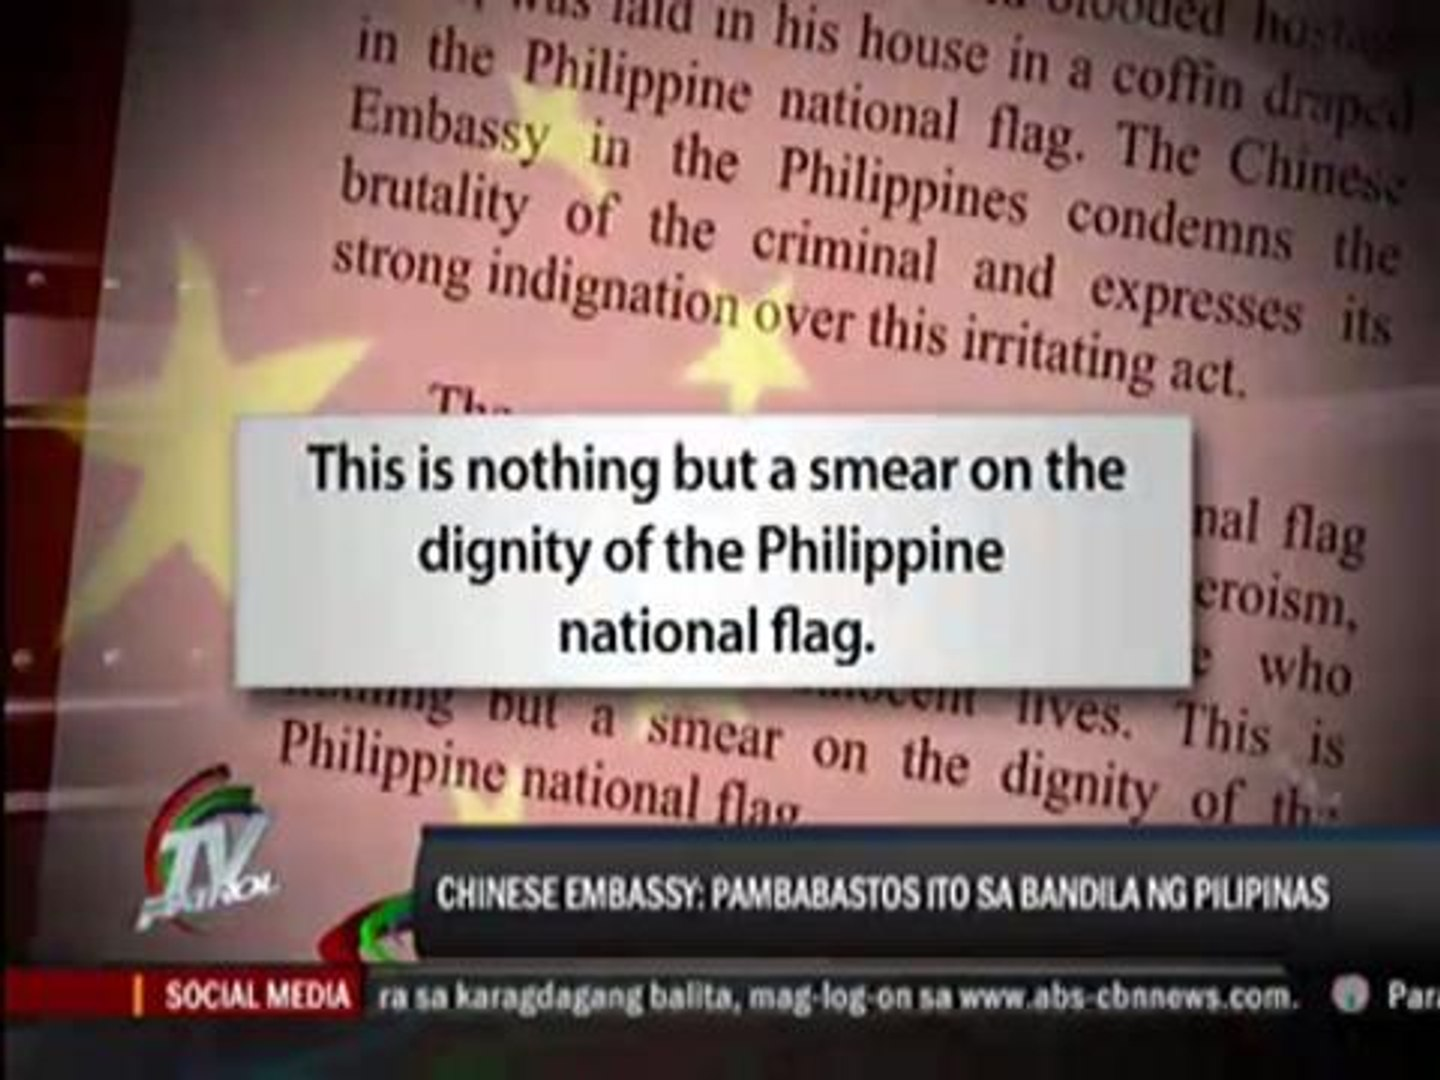 Palace denies it allowed RP flag on Mendoza 's coffin